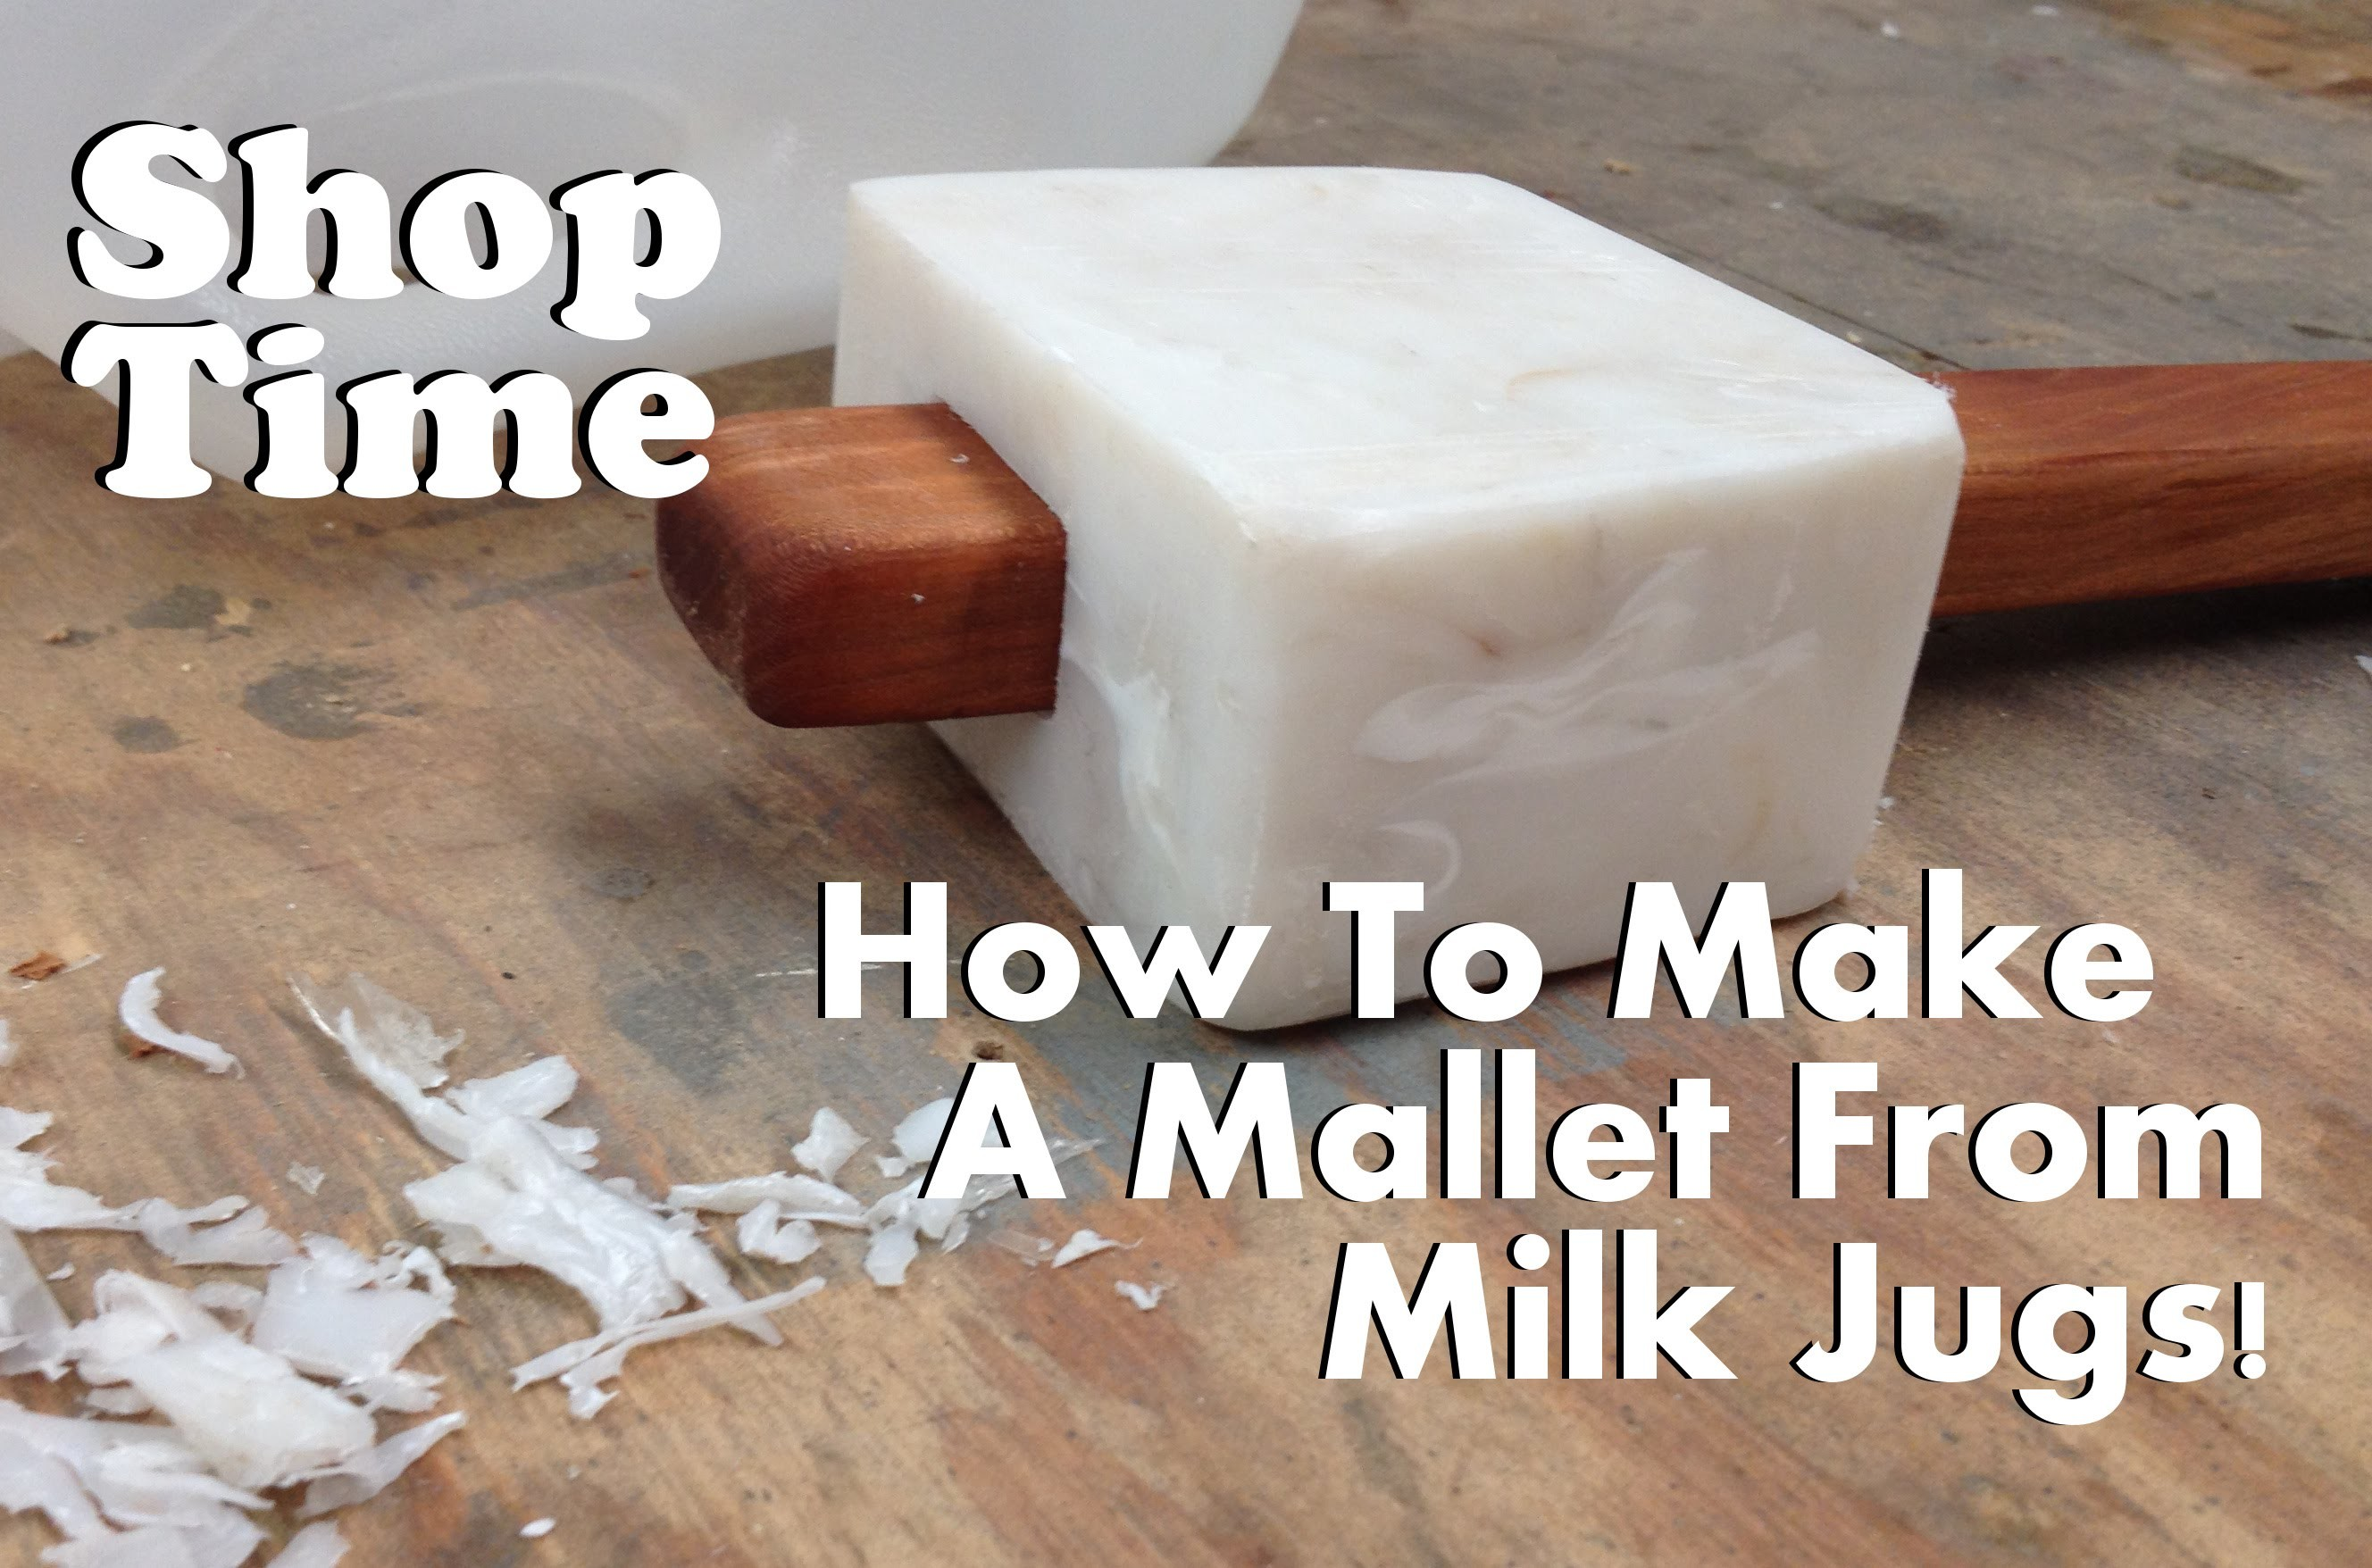 How To Make A Mallet From Milk Jugs!